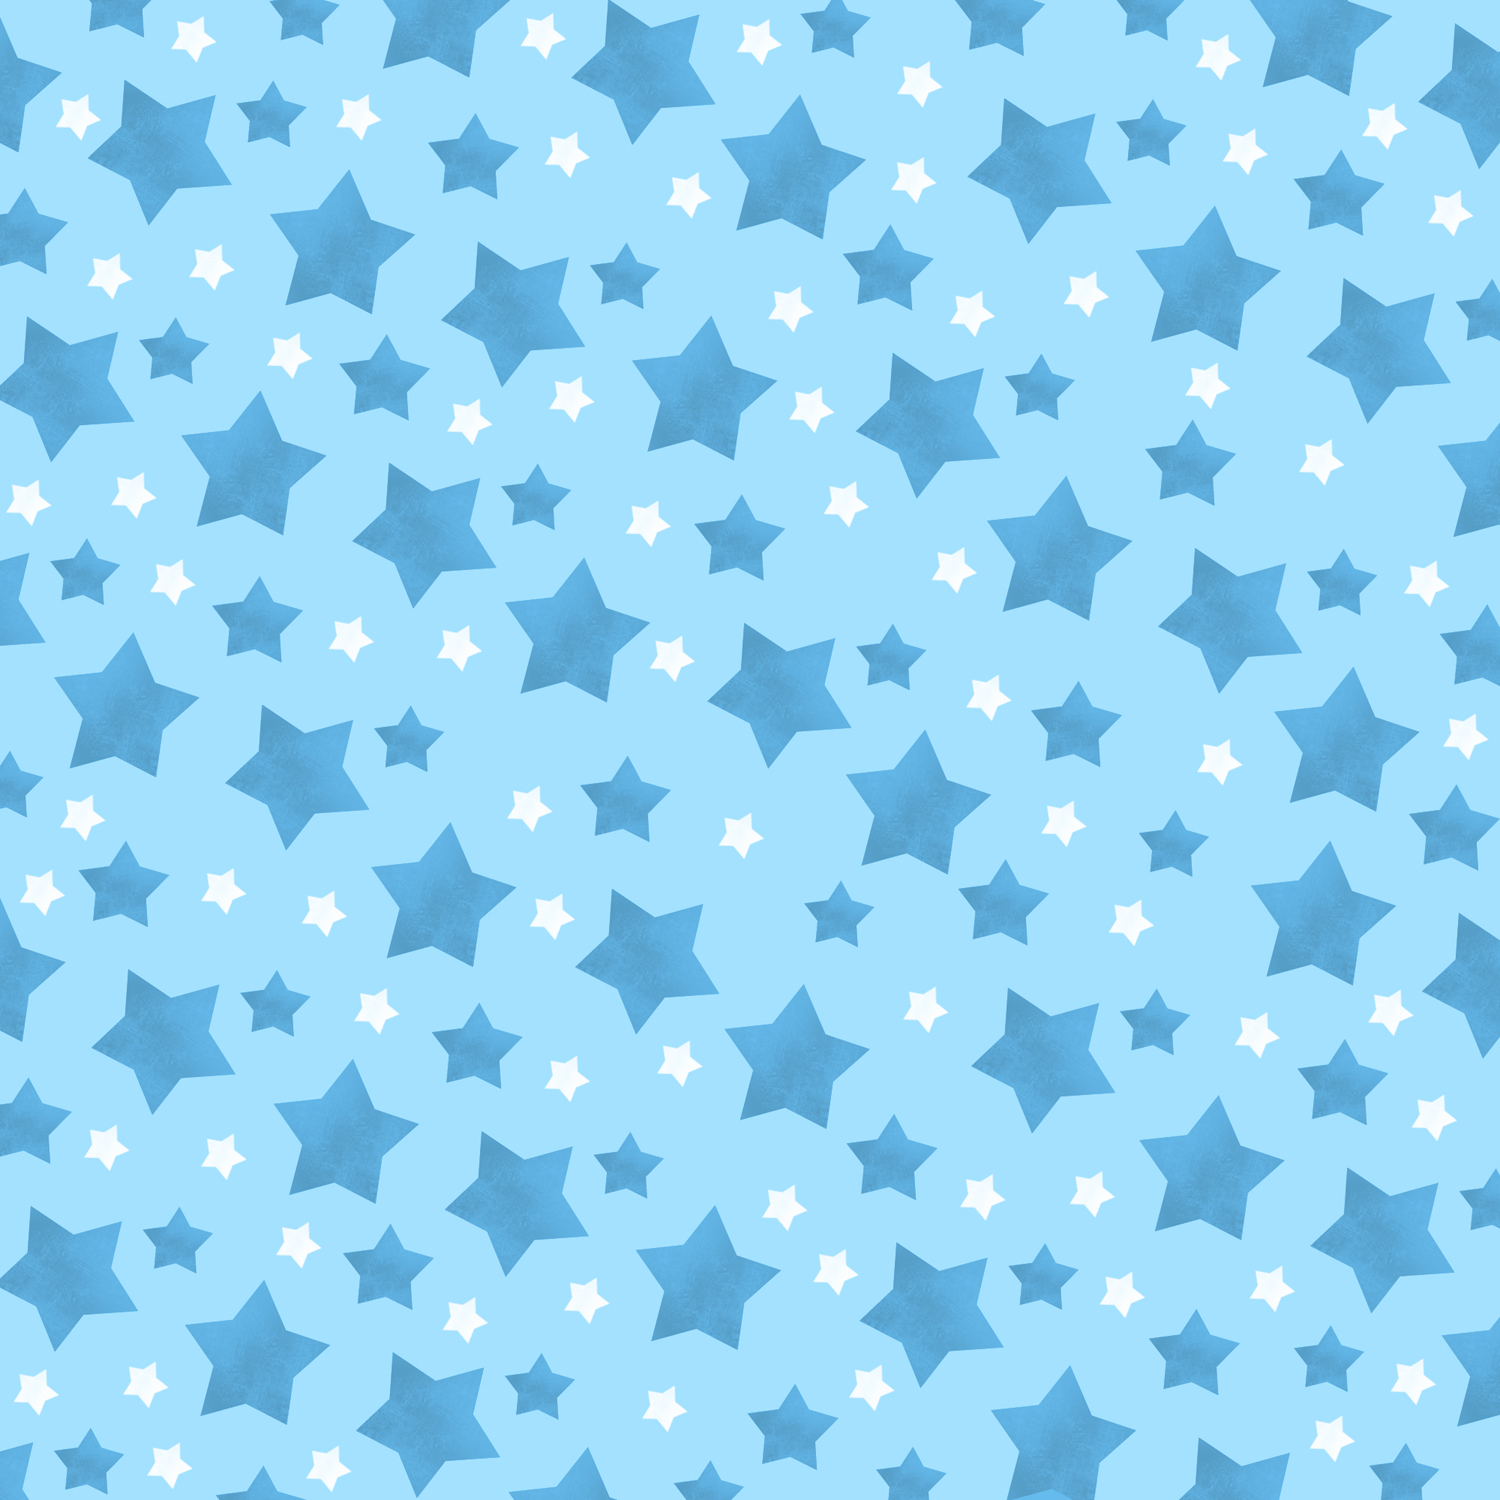 blue star background - photo #1